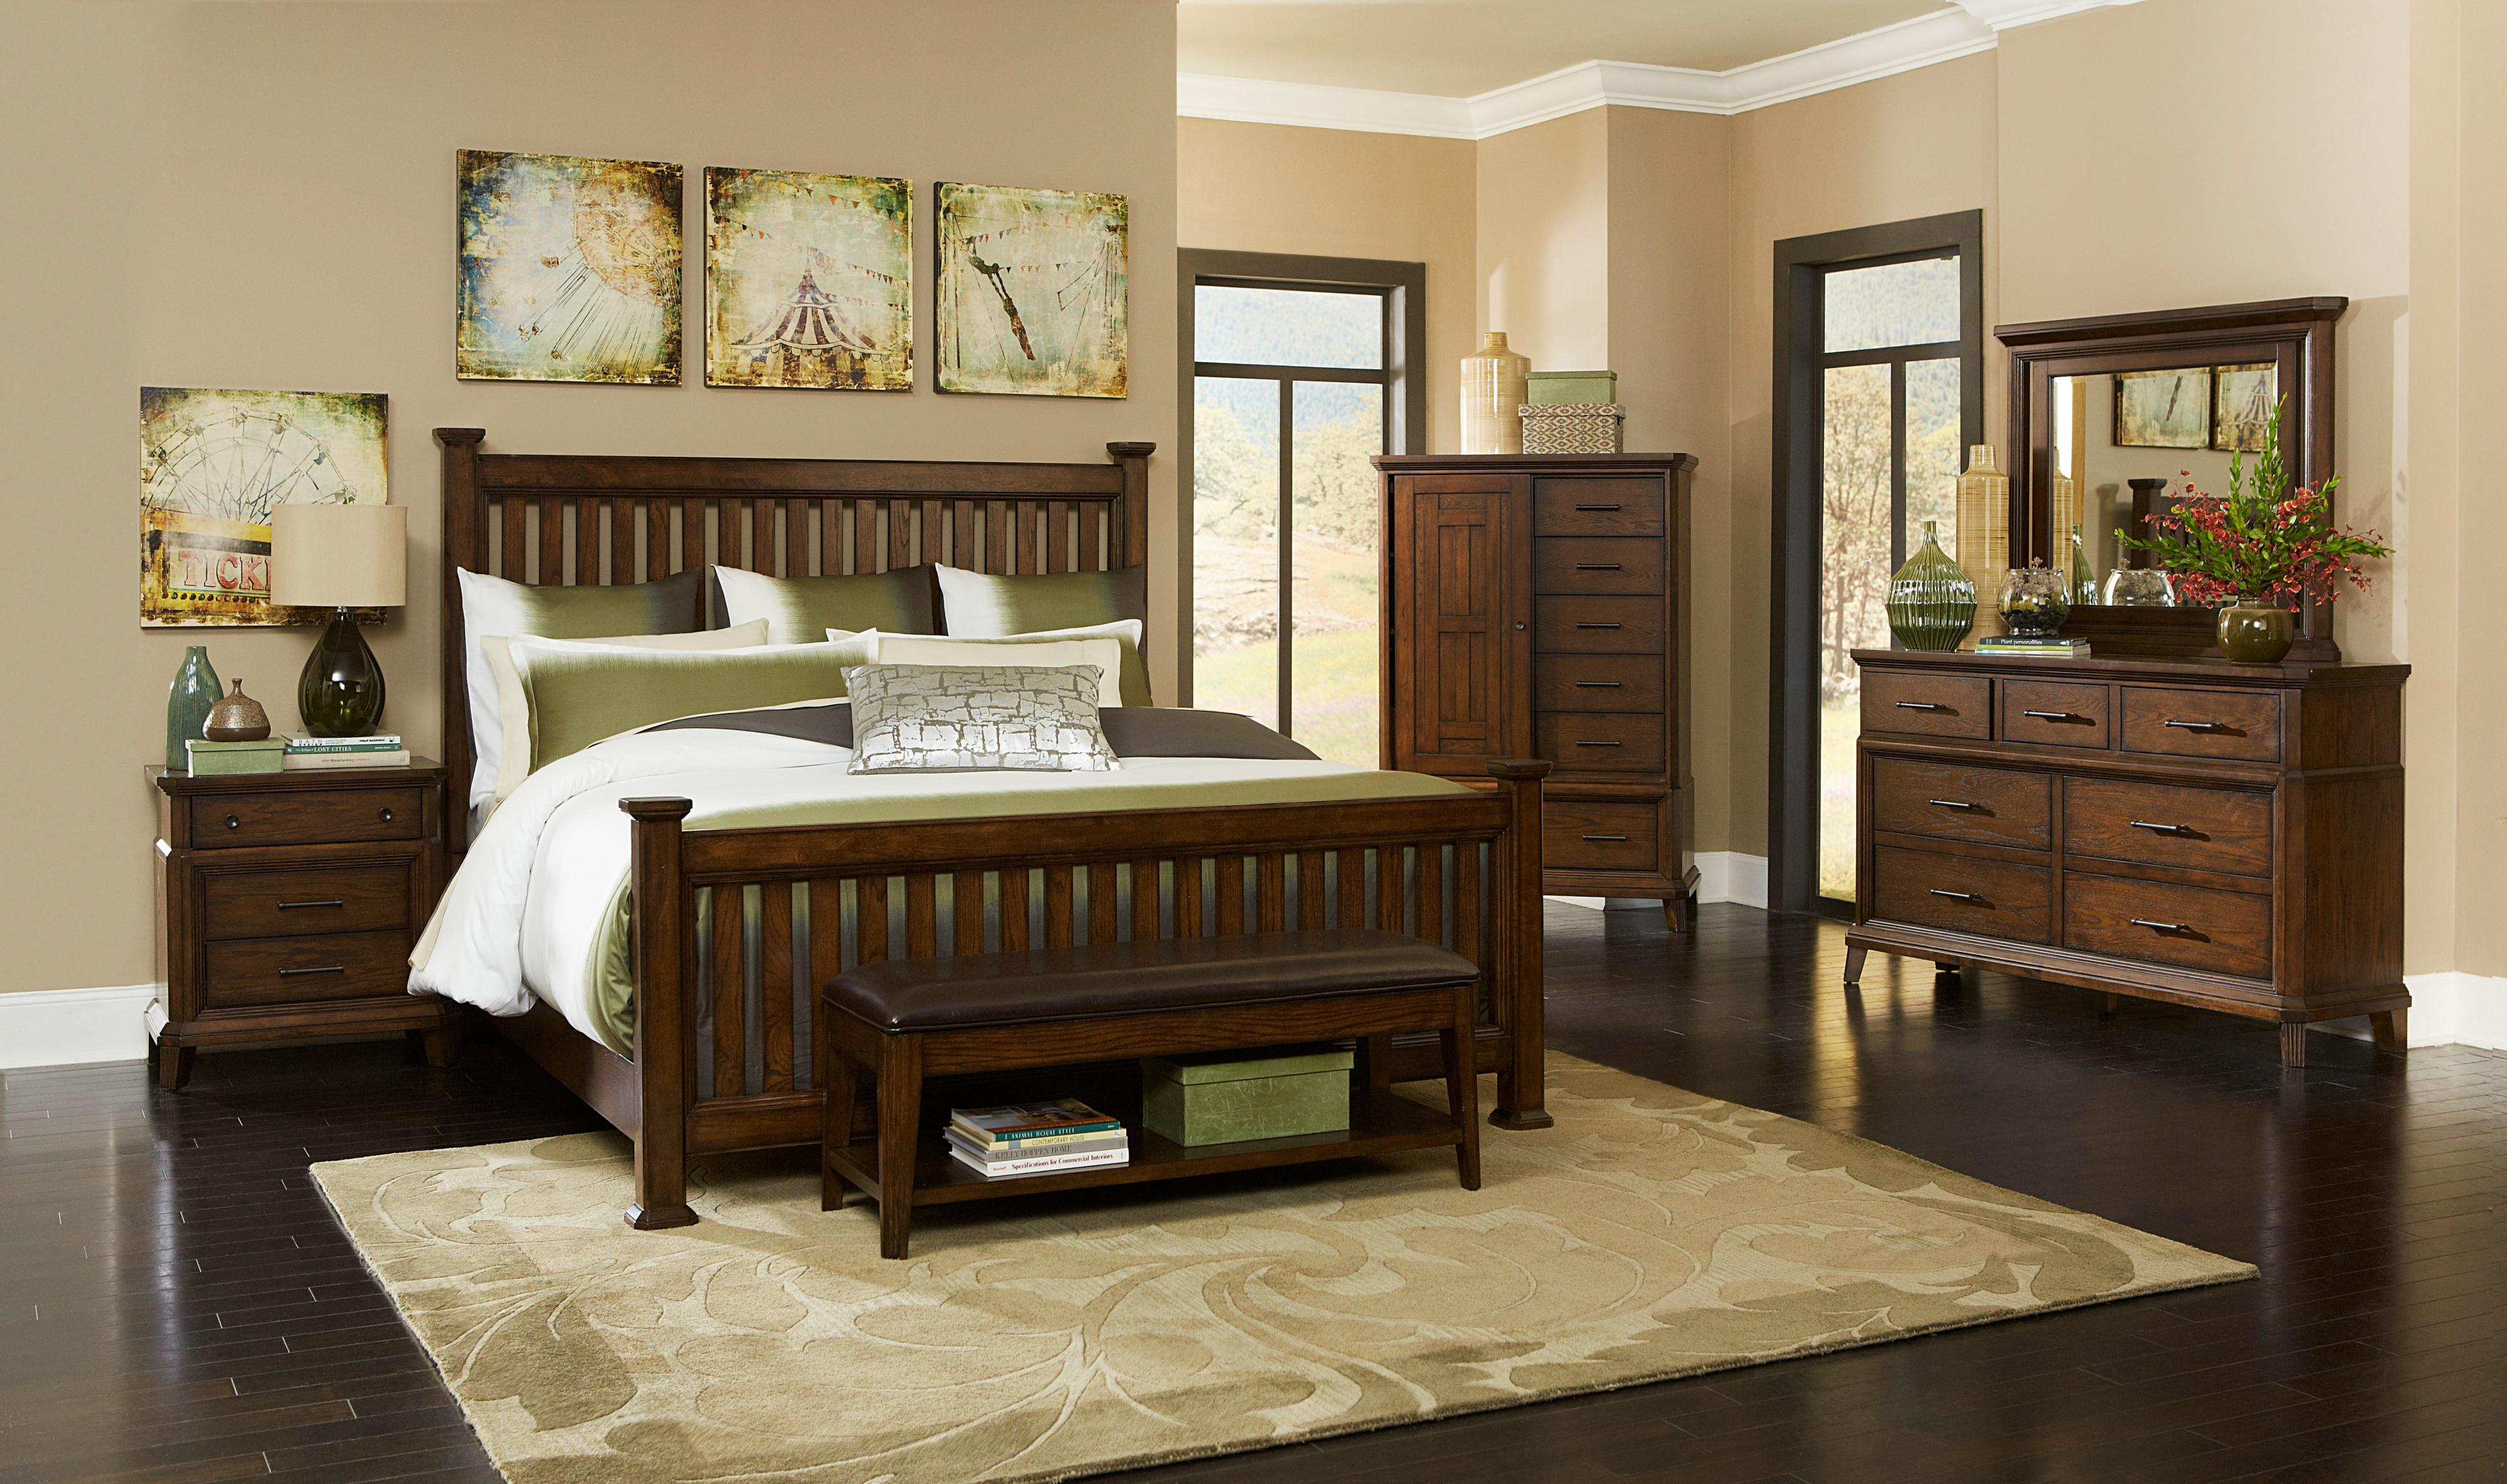 Broyhill Furniture Estes Park King Bedroom Group - Item Number: 4364 K Bedroom Group 4